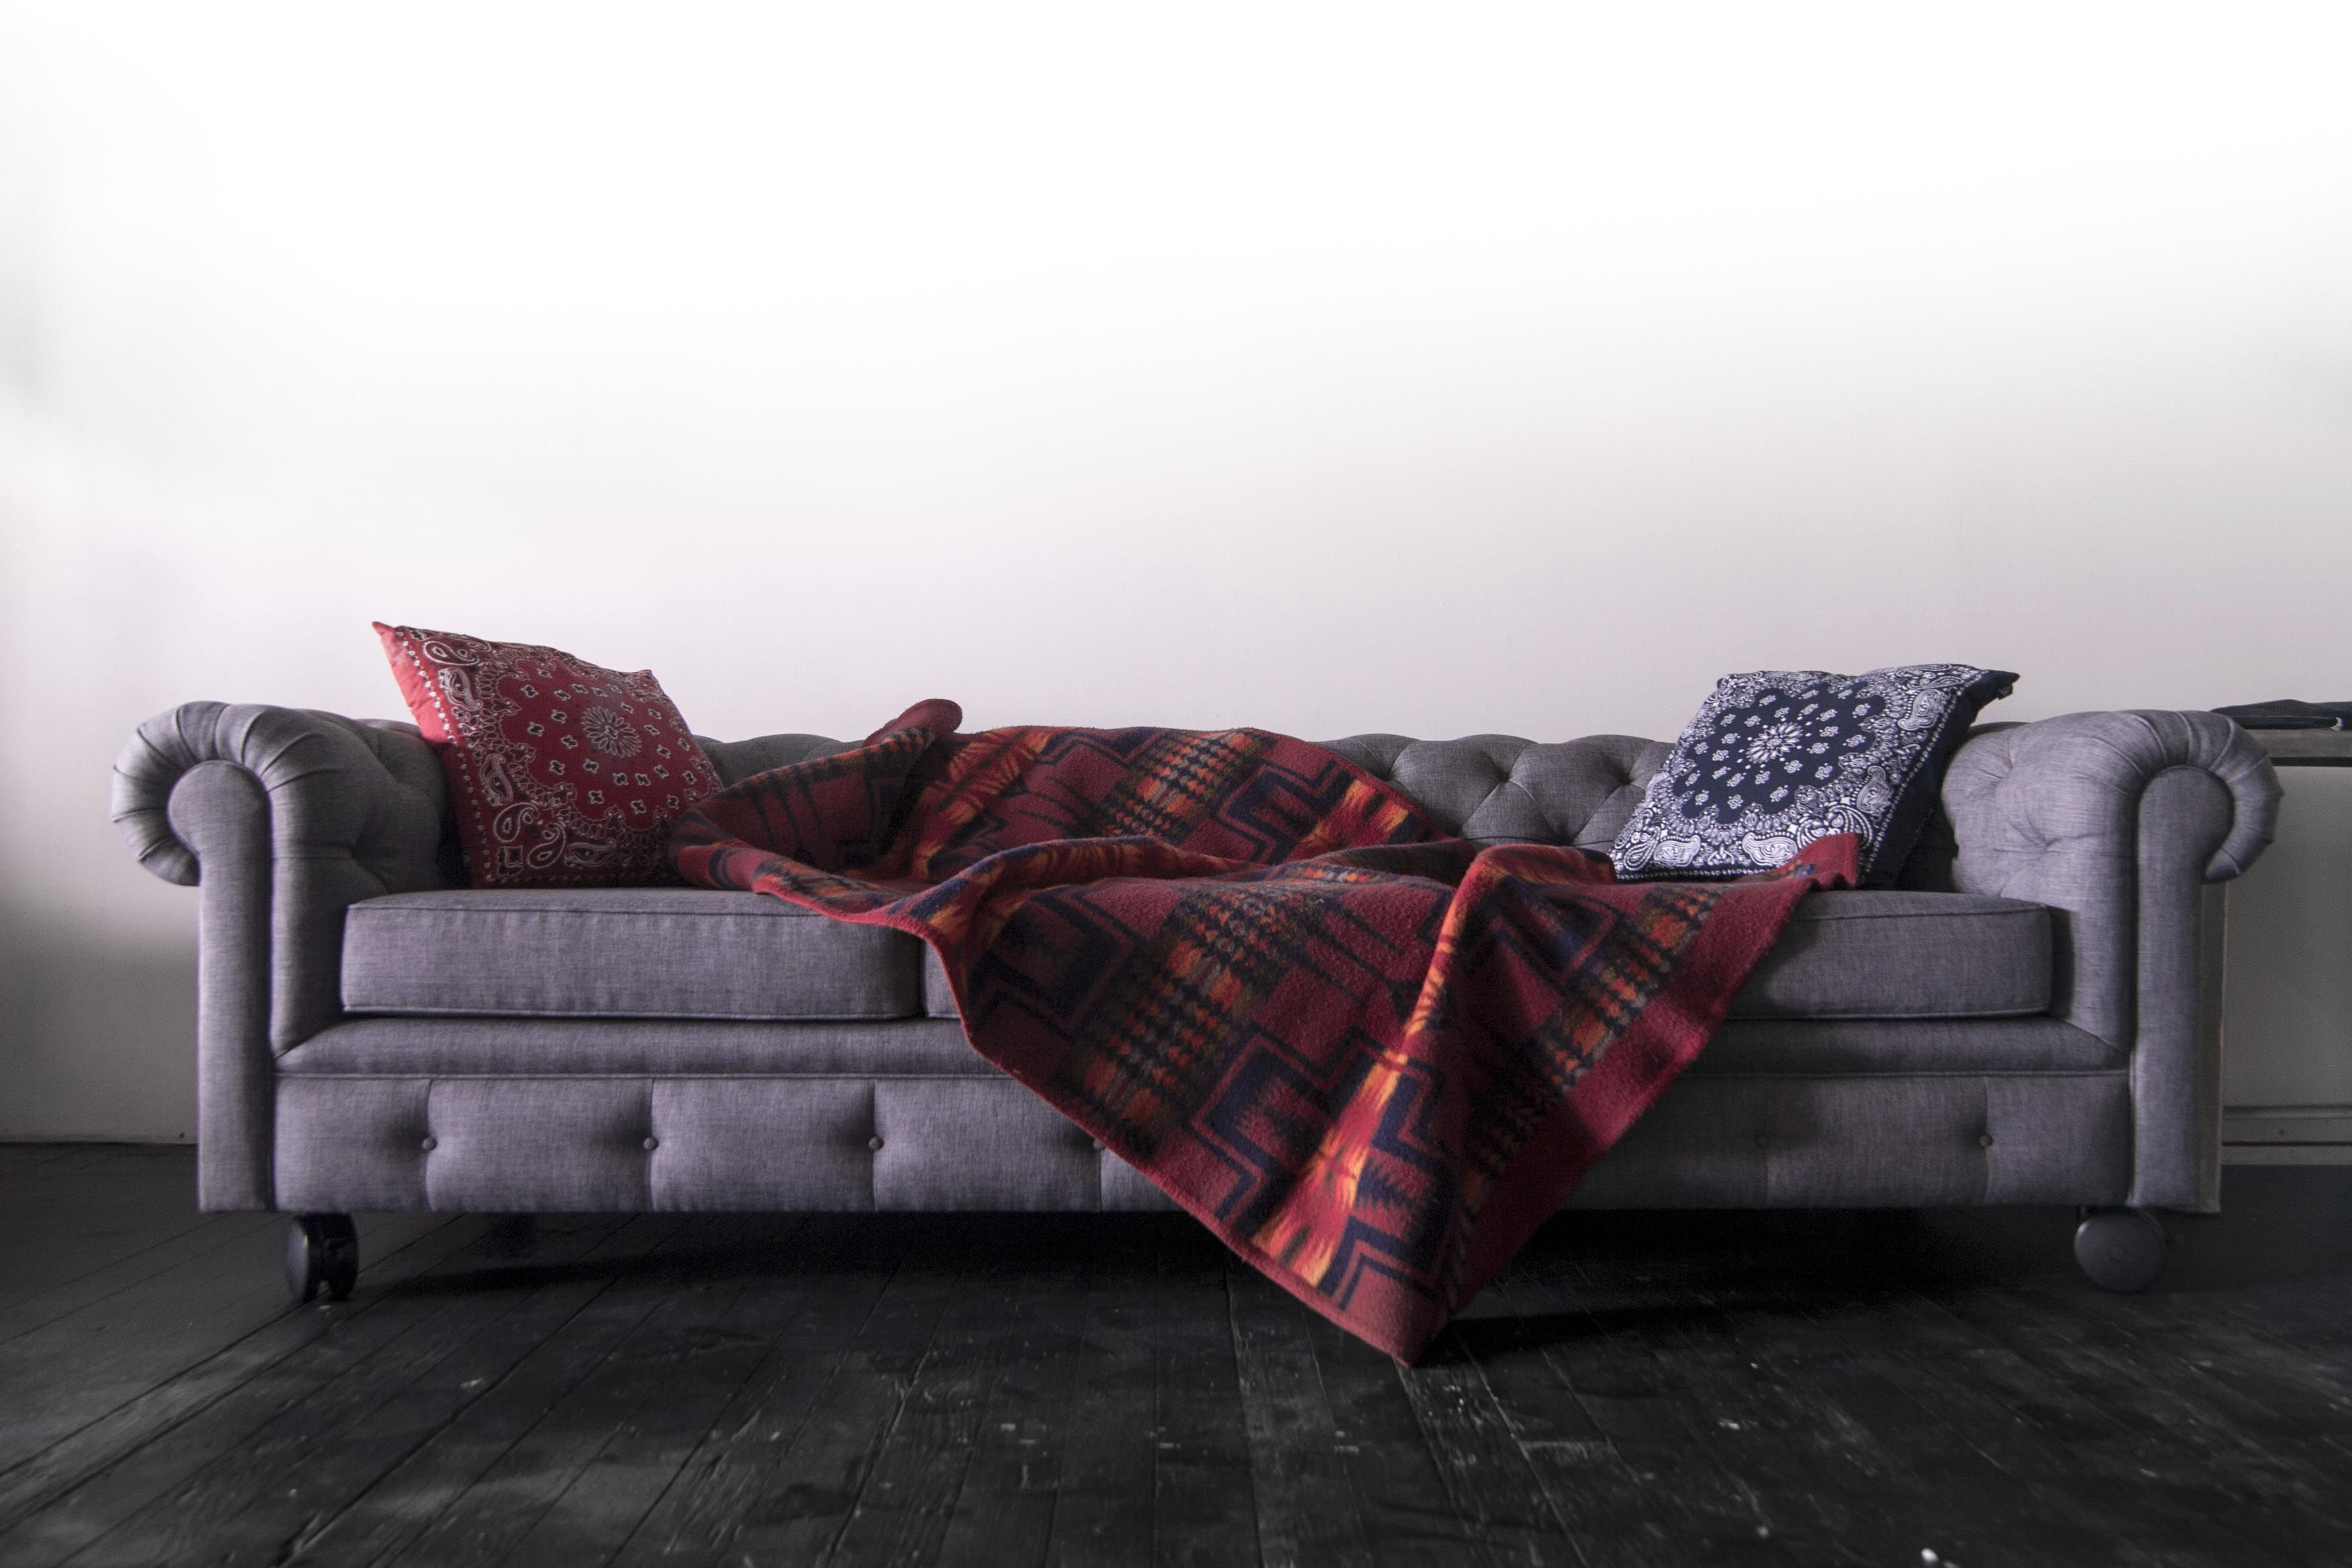 Heather Grey Couch + Vintage Pendleton Blanket  752db2875